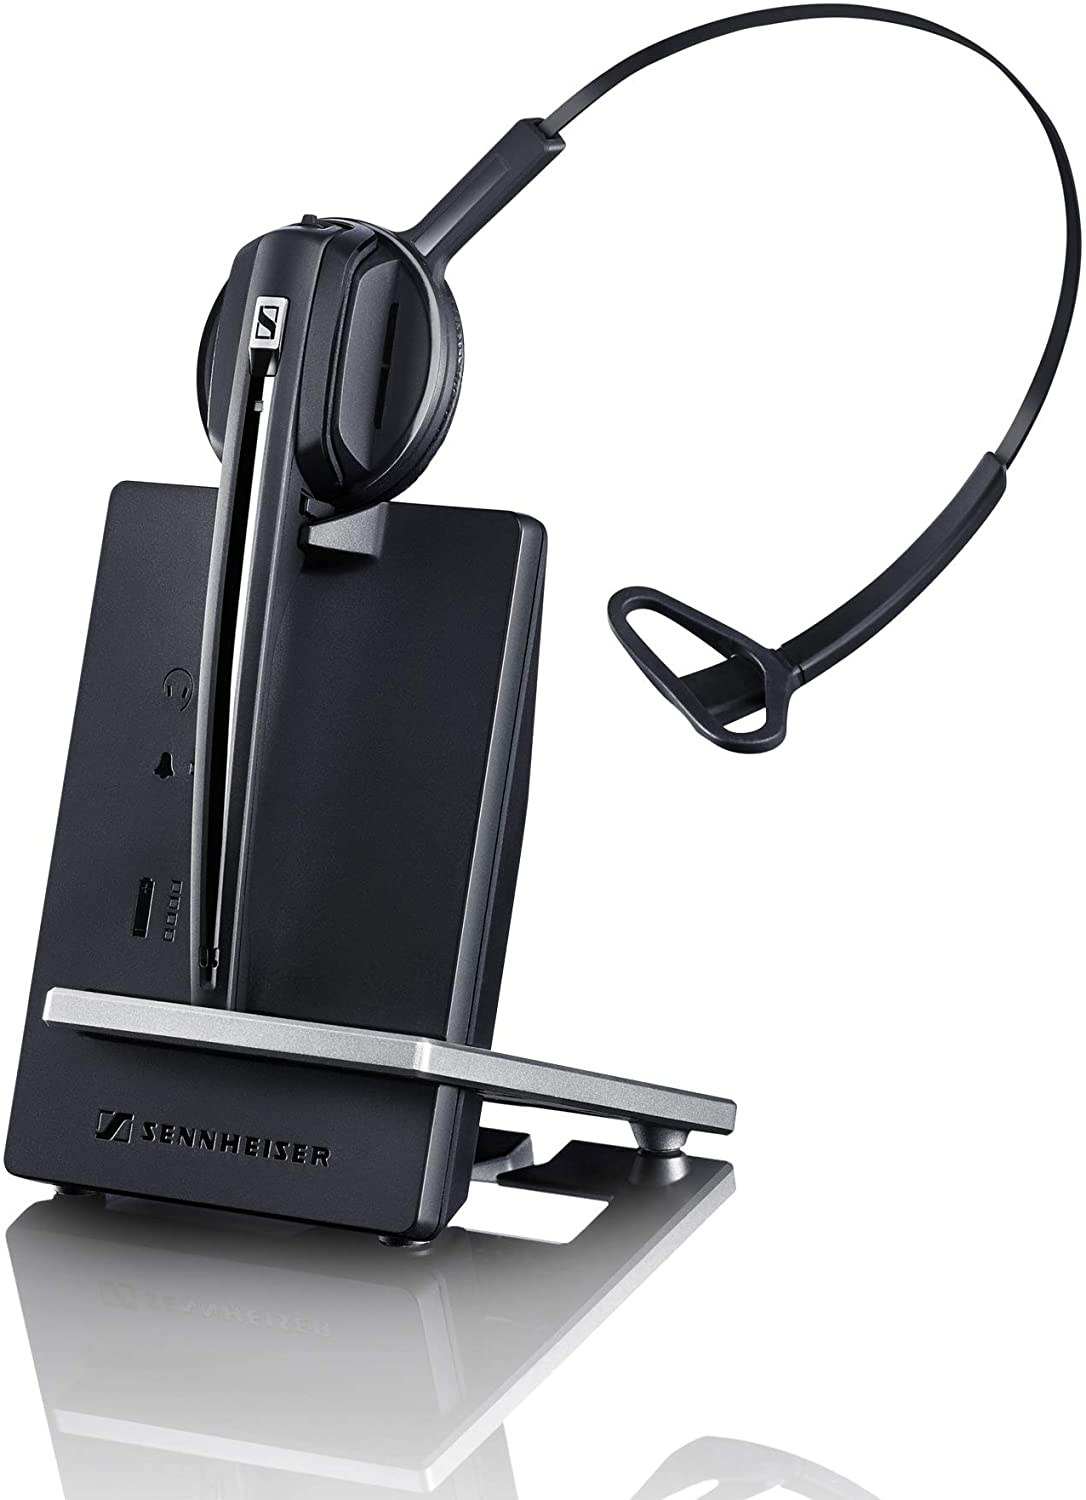 Sennheiser Enterprise SolutionD 10 Phone (506410) Single-Sided Wireless DECT Headset for Direct Desk Phone Connection, with Noise Cancelling Microphone (Black)